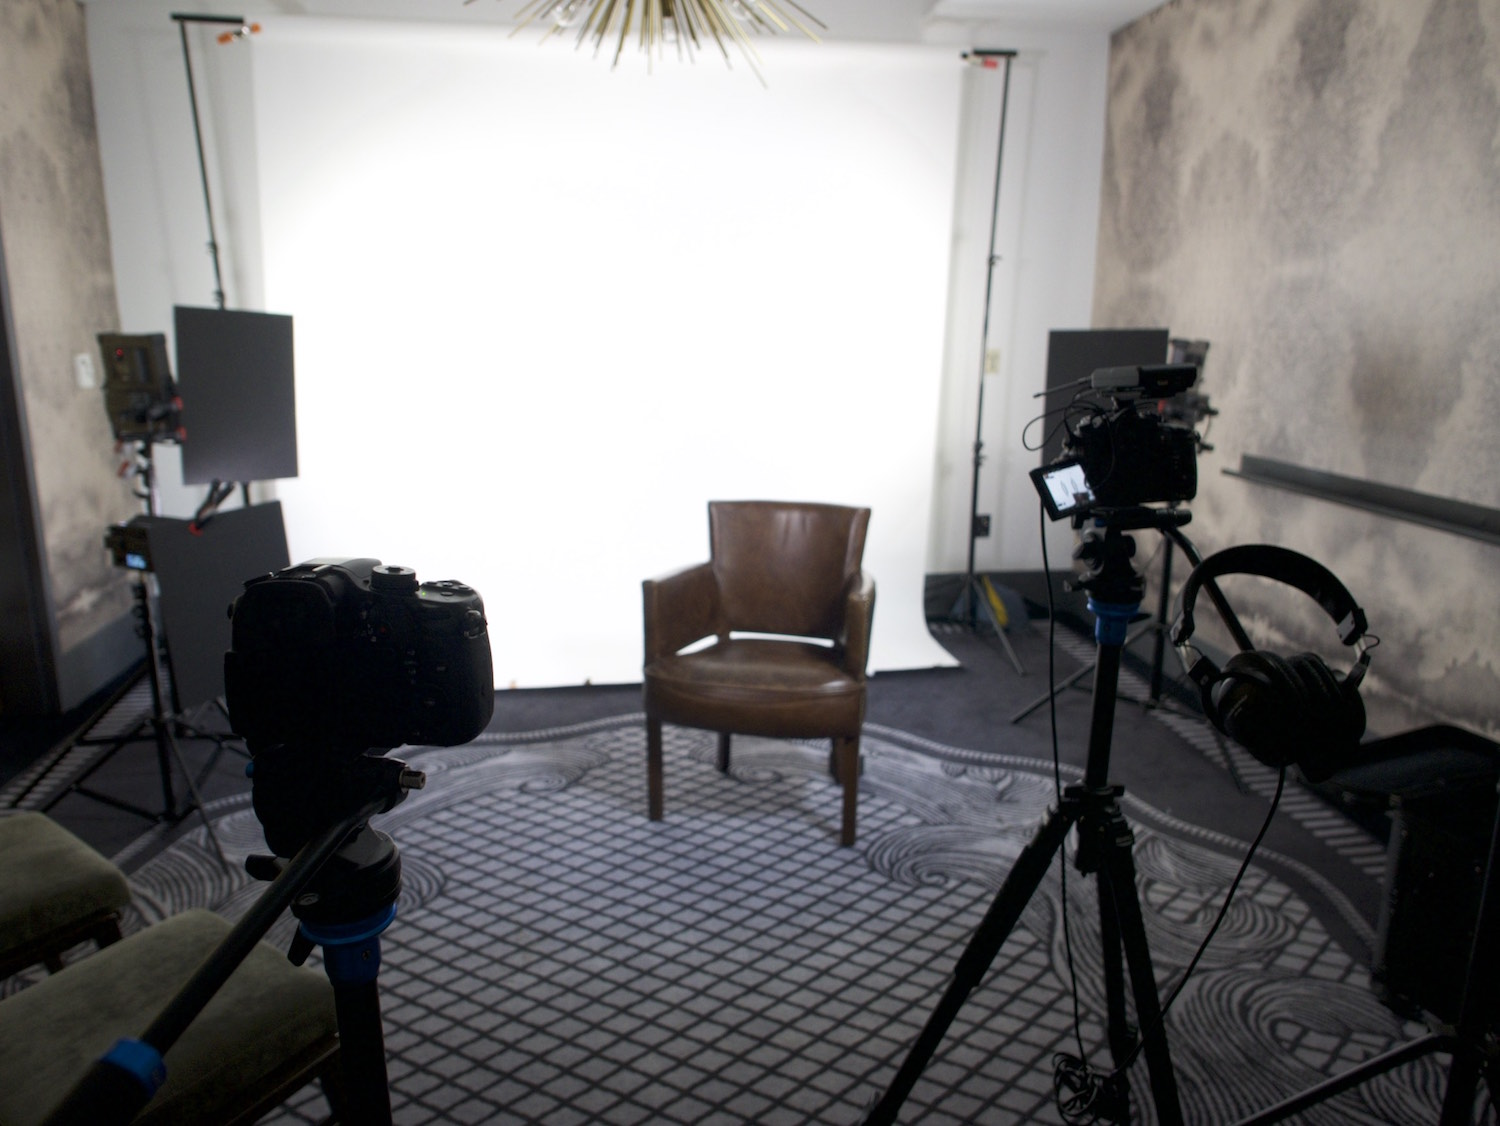 Behind the scenes interview setup on a white seamless backdrop